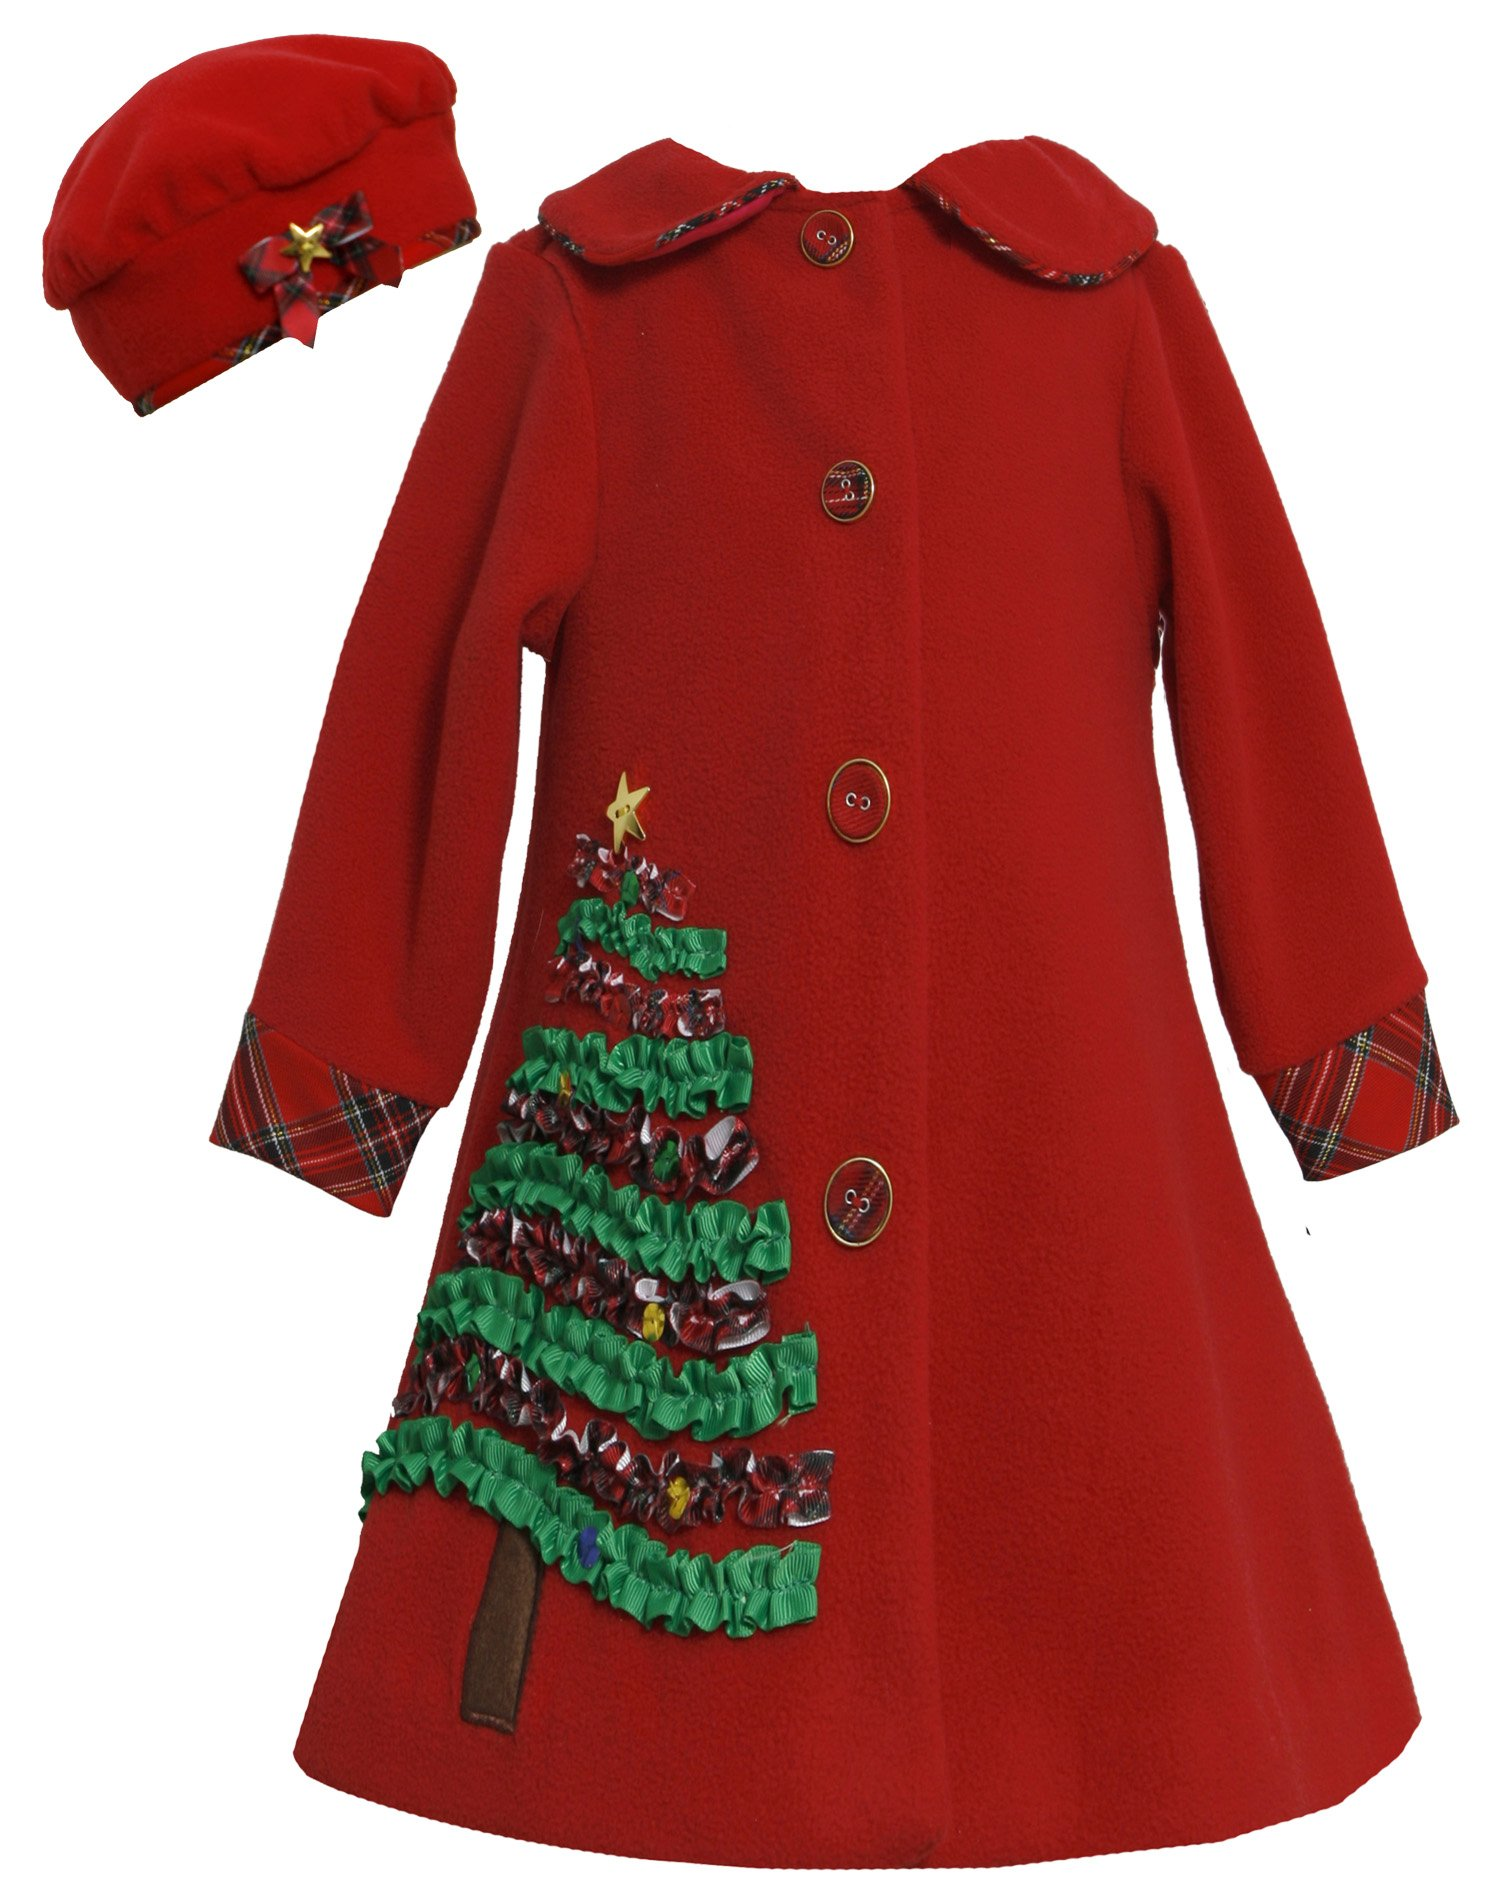 Bonnie Jean Girls 7-16 Red Sequin Holiday Tree Applique Fleece Coat / Hat Set RD4TA, Red